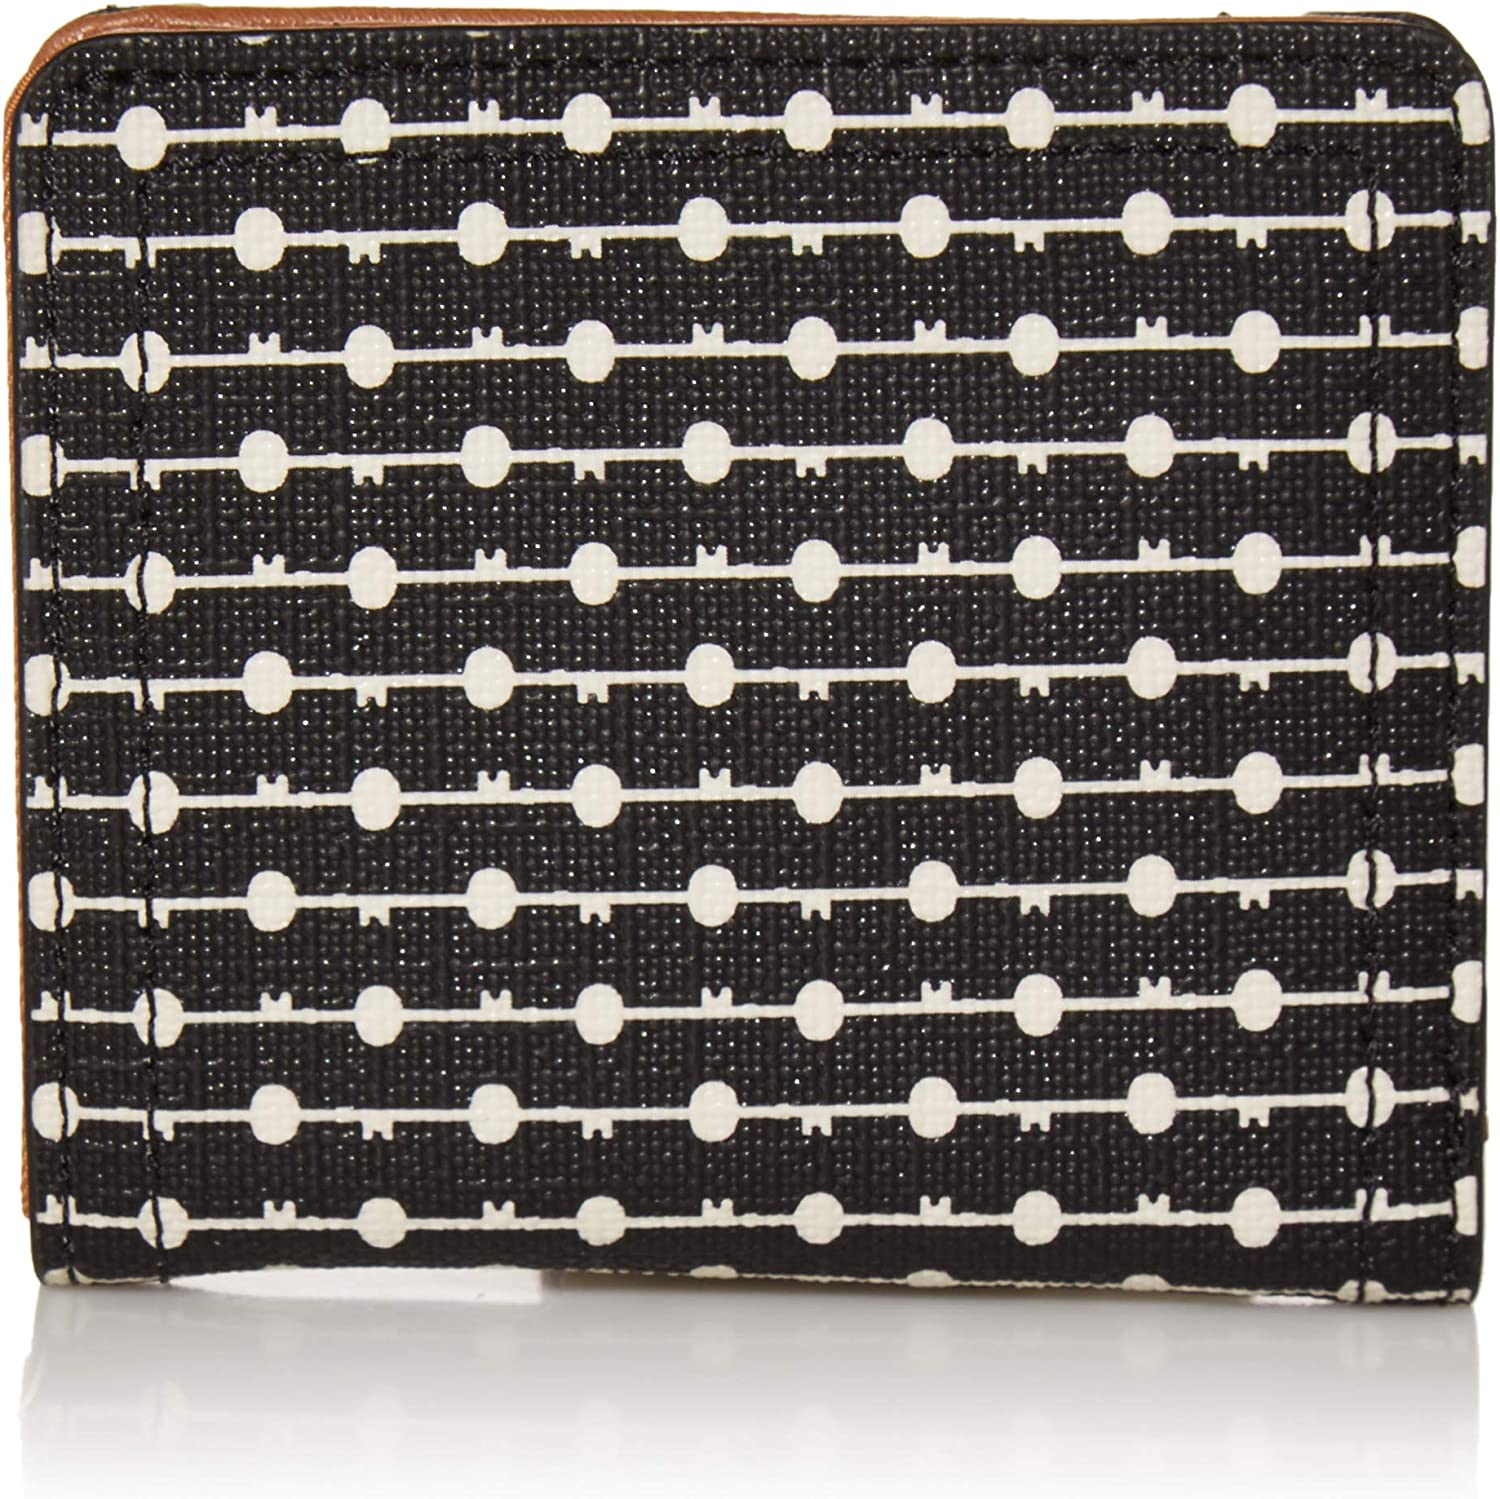 Fossil Credence Women's Logan Leather Wallet RFID-Blocking High material Bifold